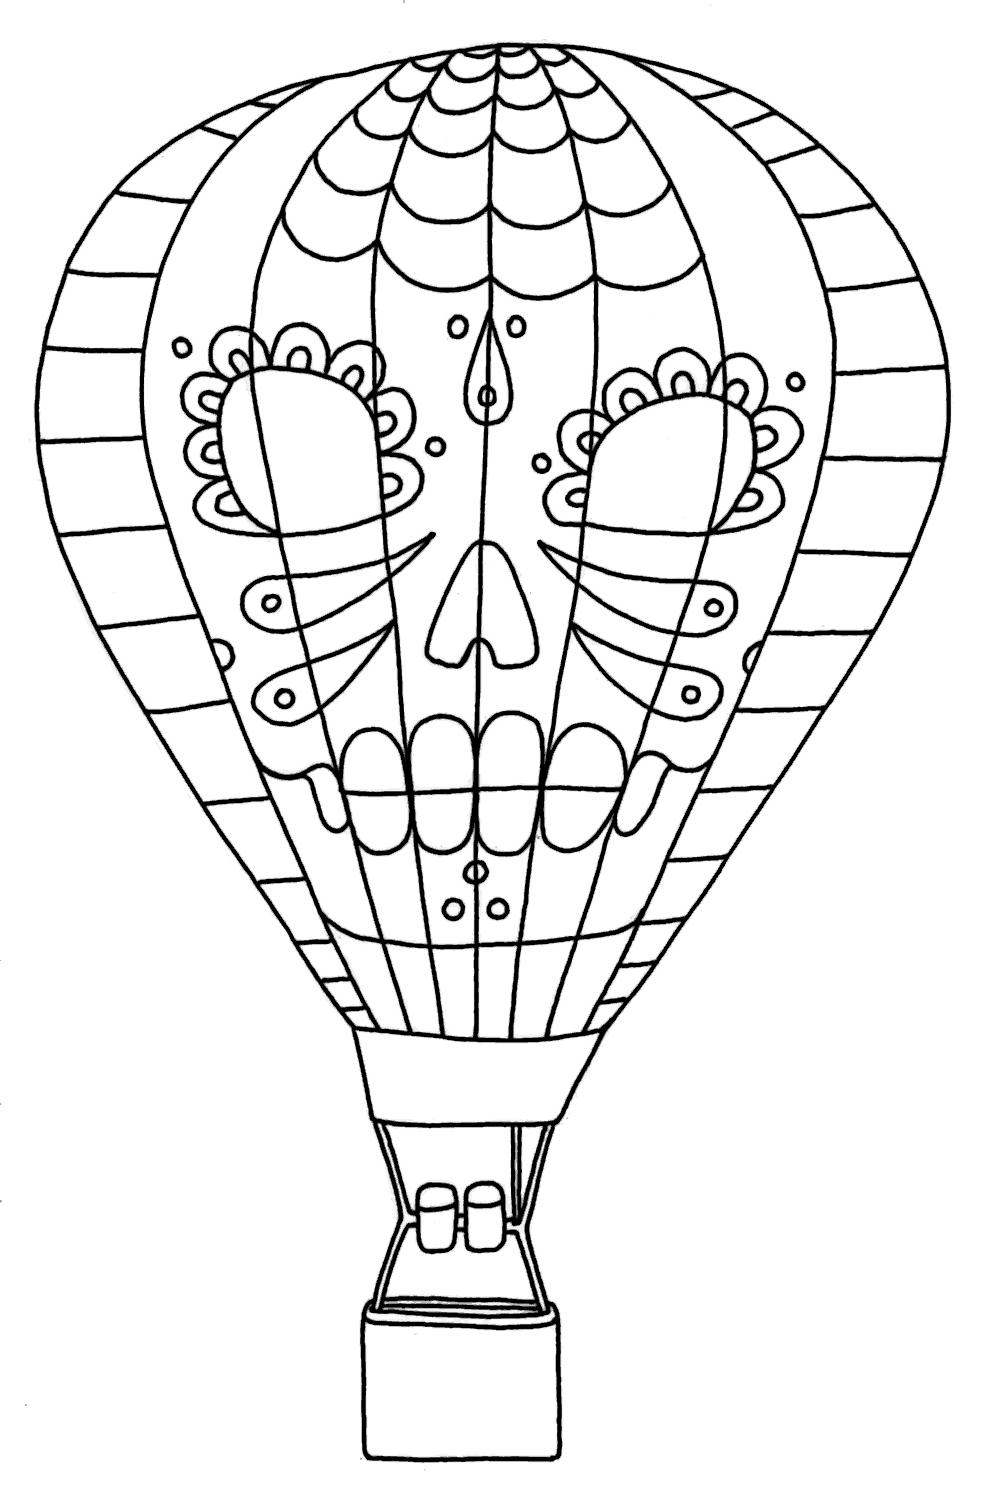 air coloring pages for kids - photo#21